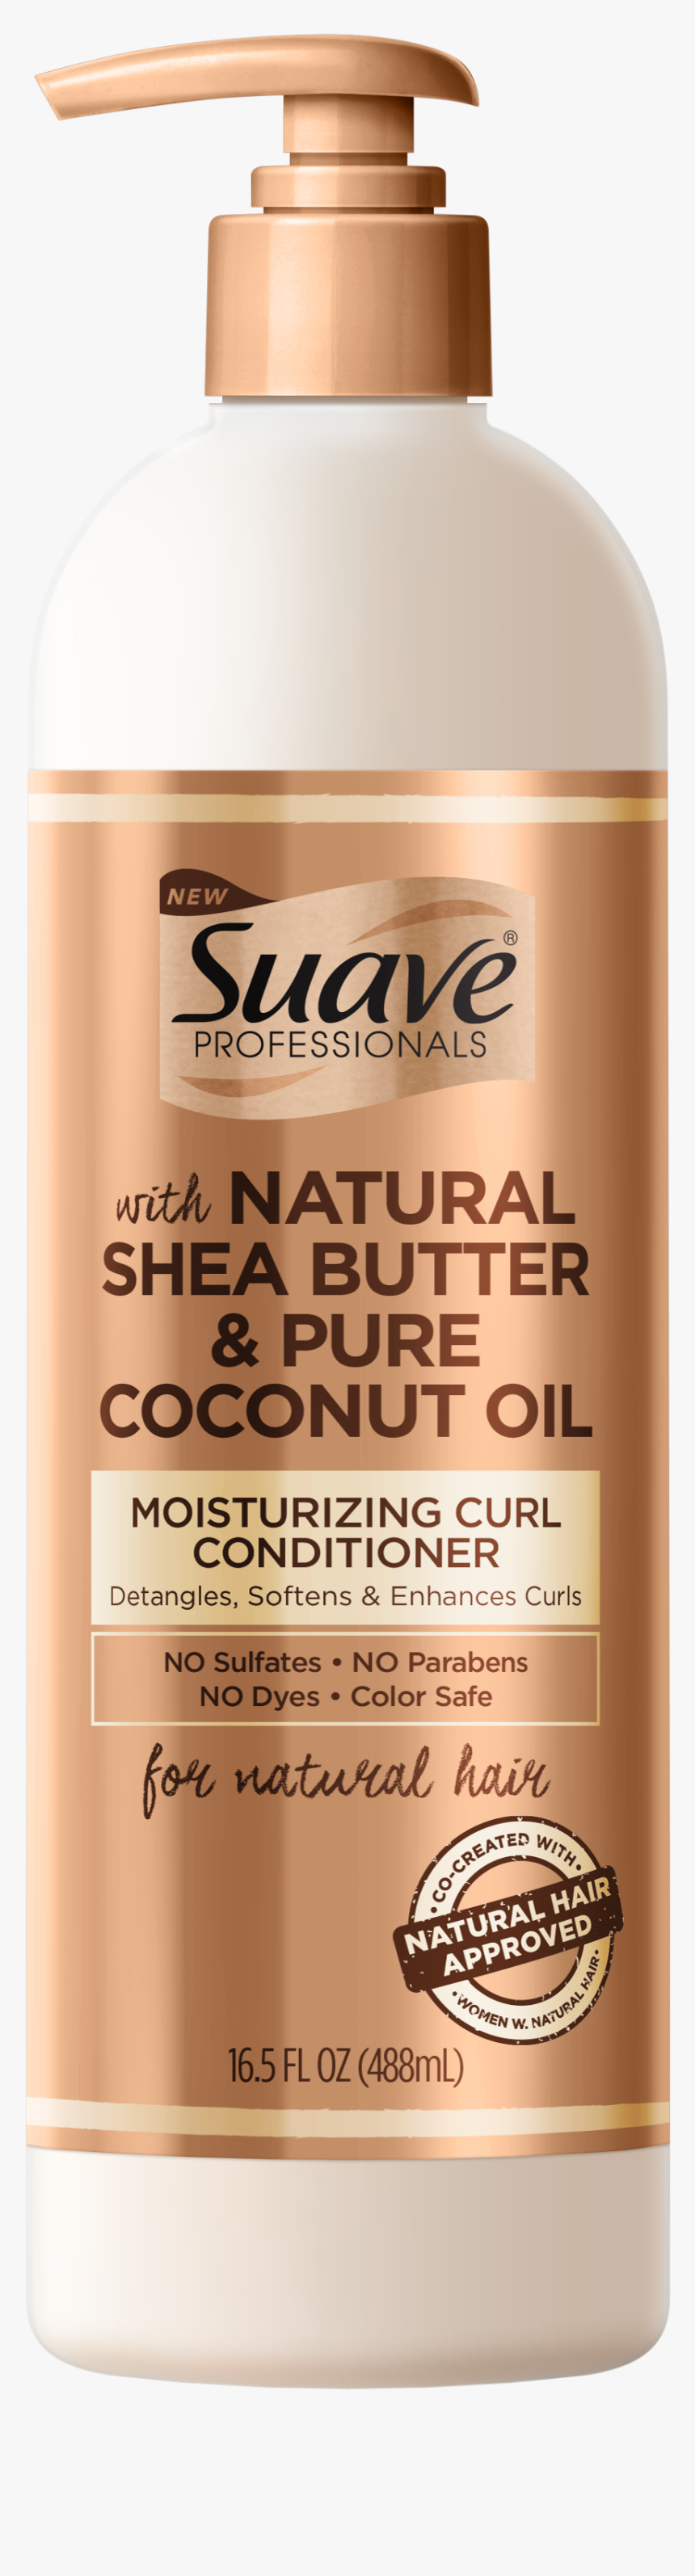 Suave Professionals For Natural Hair, HD Png Download, Free Download